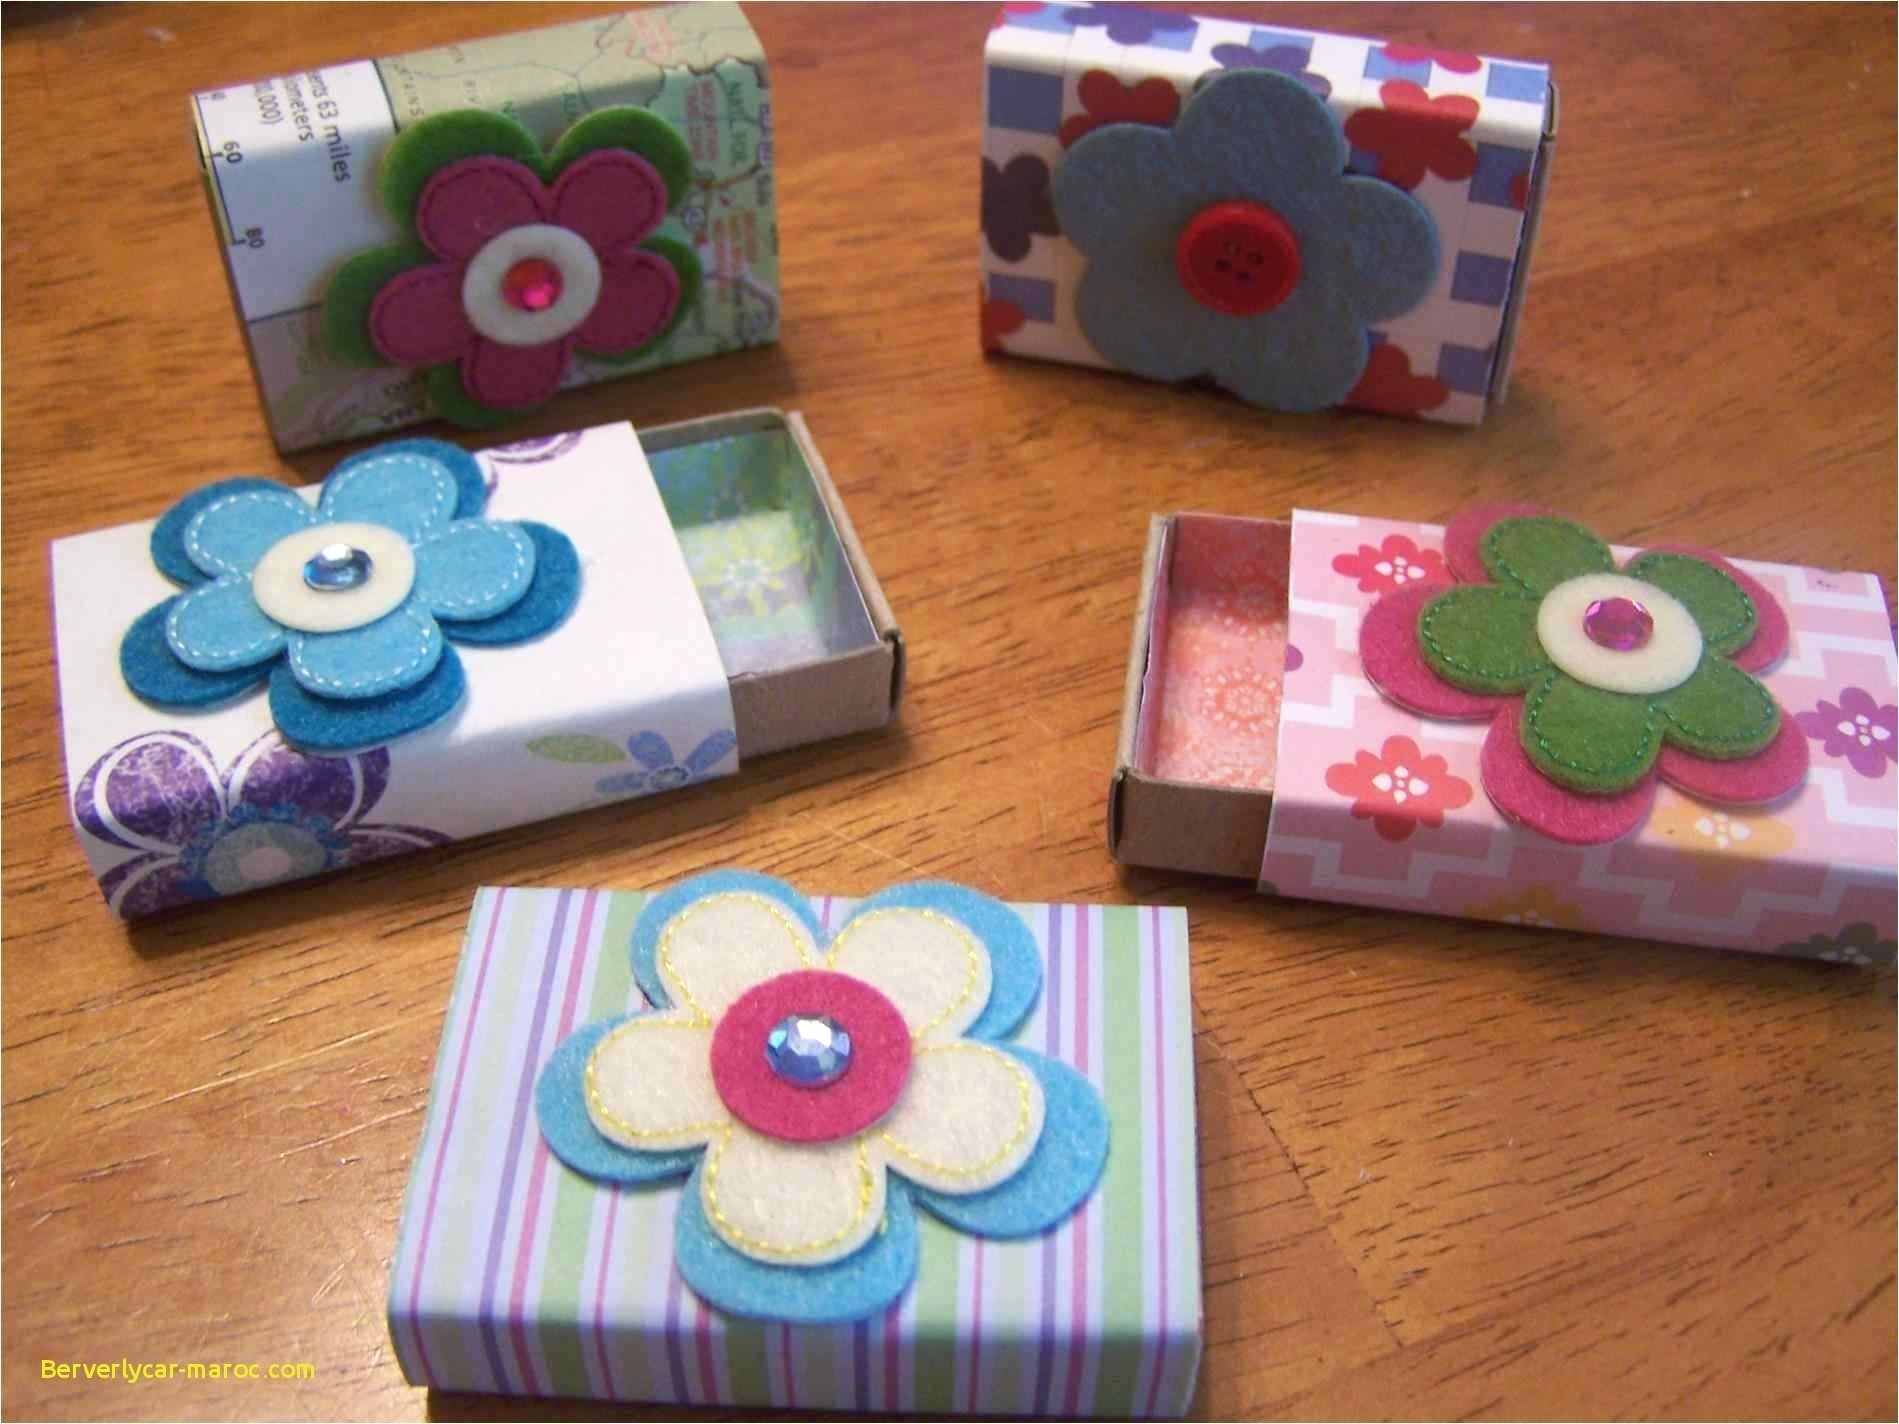 10 Fashionable Unique Craft Ideas To Sell unique craft ideas to make and sell best of relaxing craft ideas for 1 2020